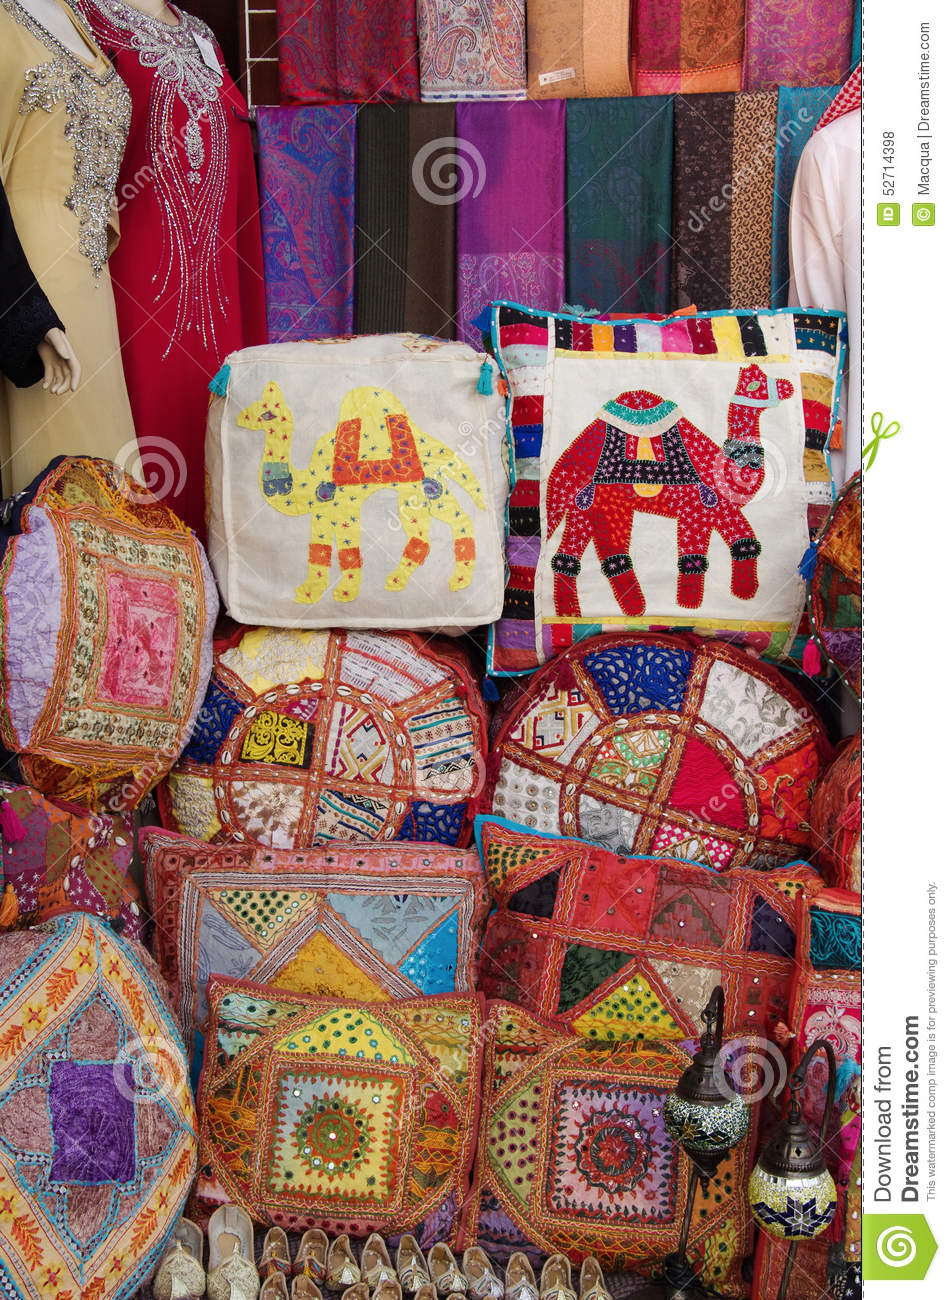 Many patchwork pillows